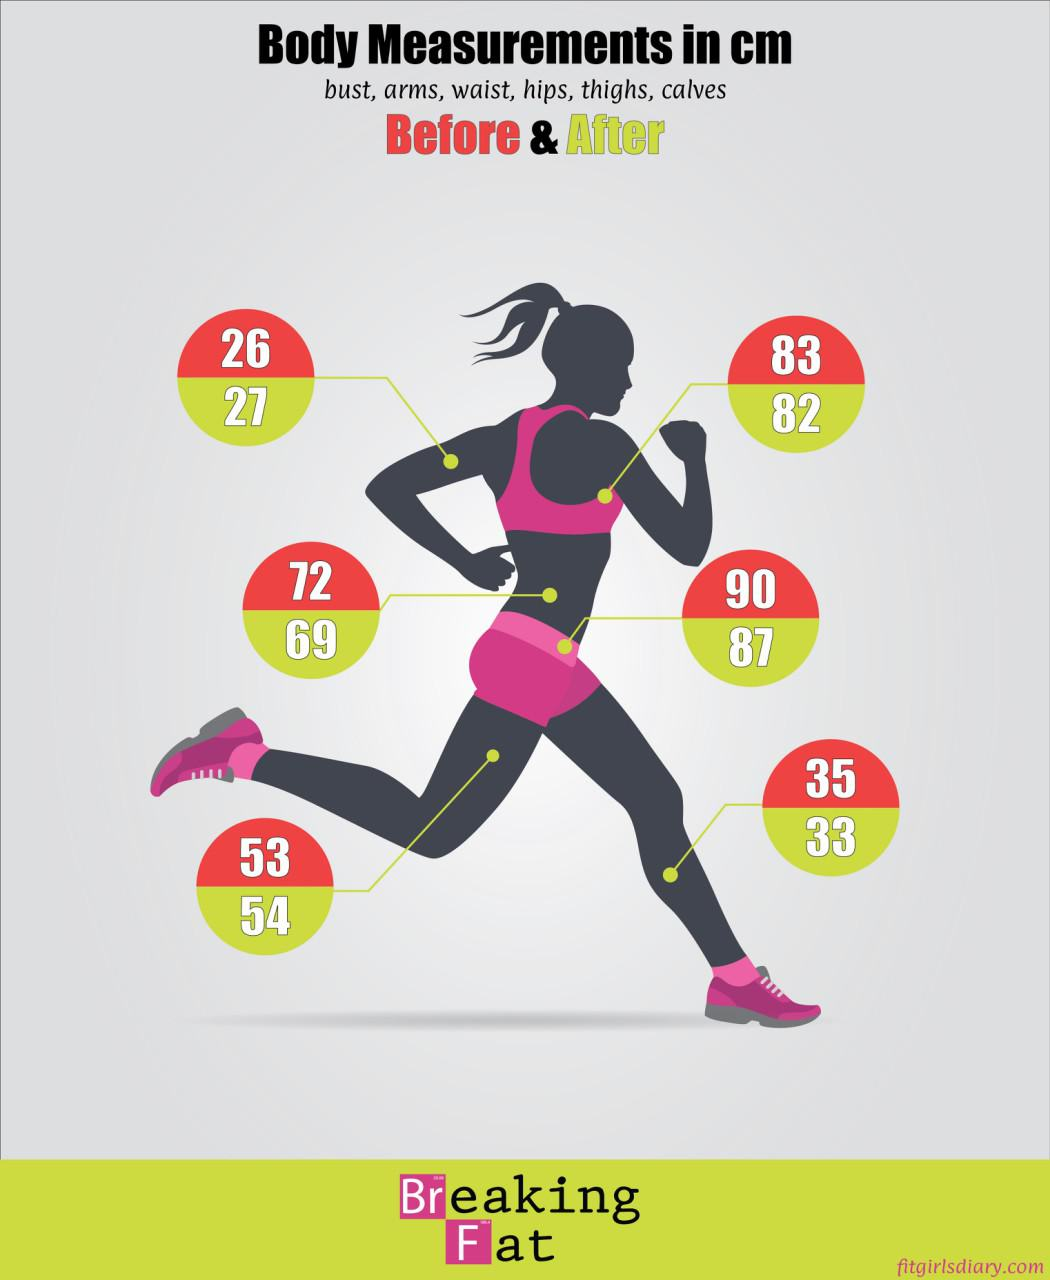 Body Measurements Before and After Breaking Fat - The best weight loss program for women